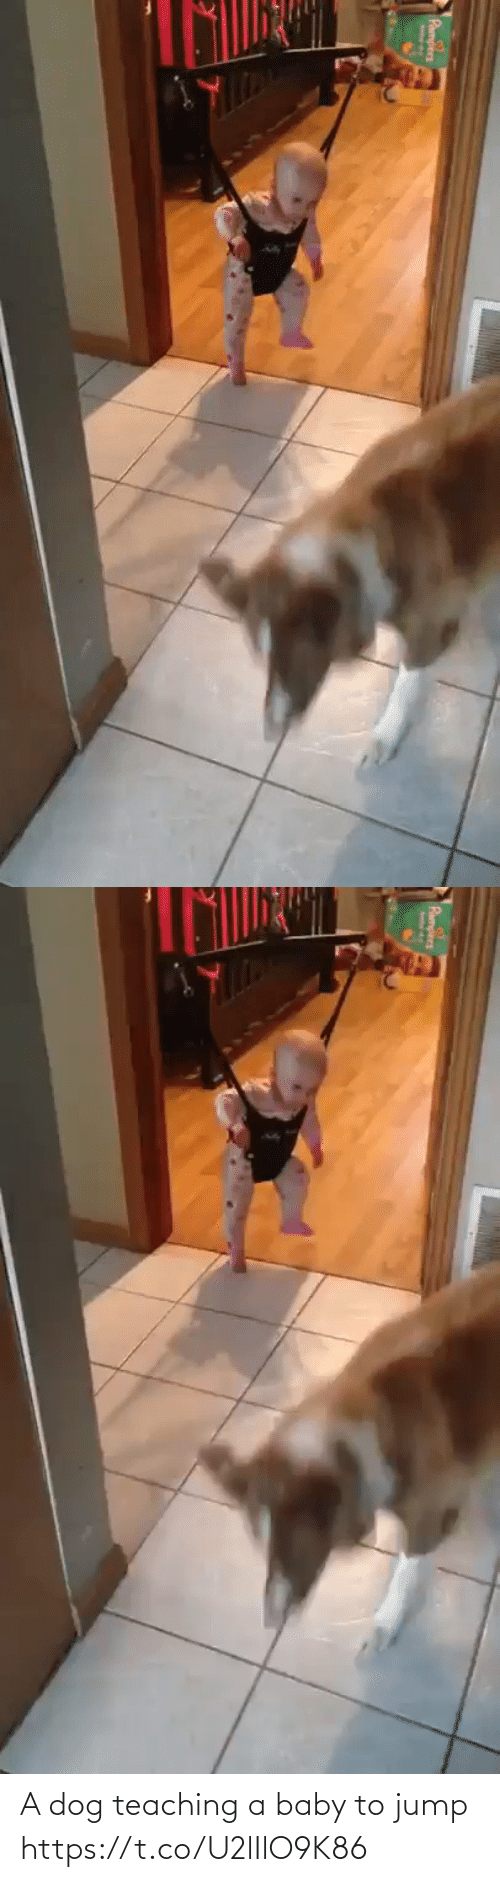 jump: A dog teaching a baby to jump https://t.co/U2lIlO9K86